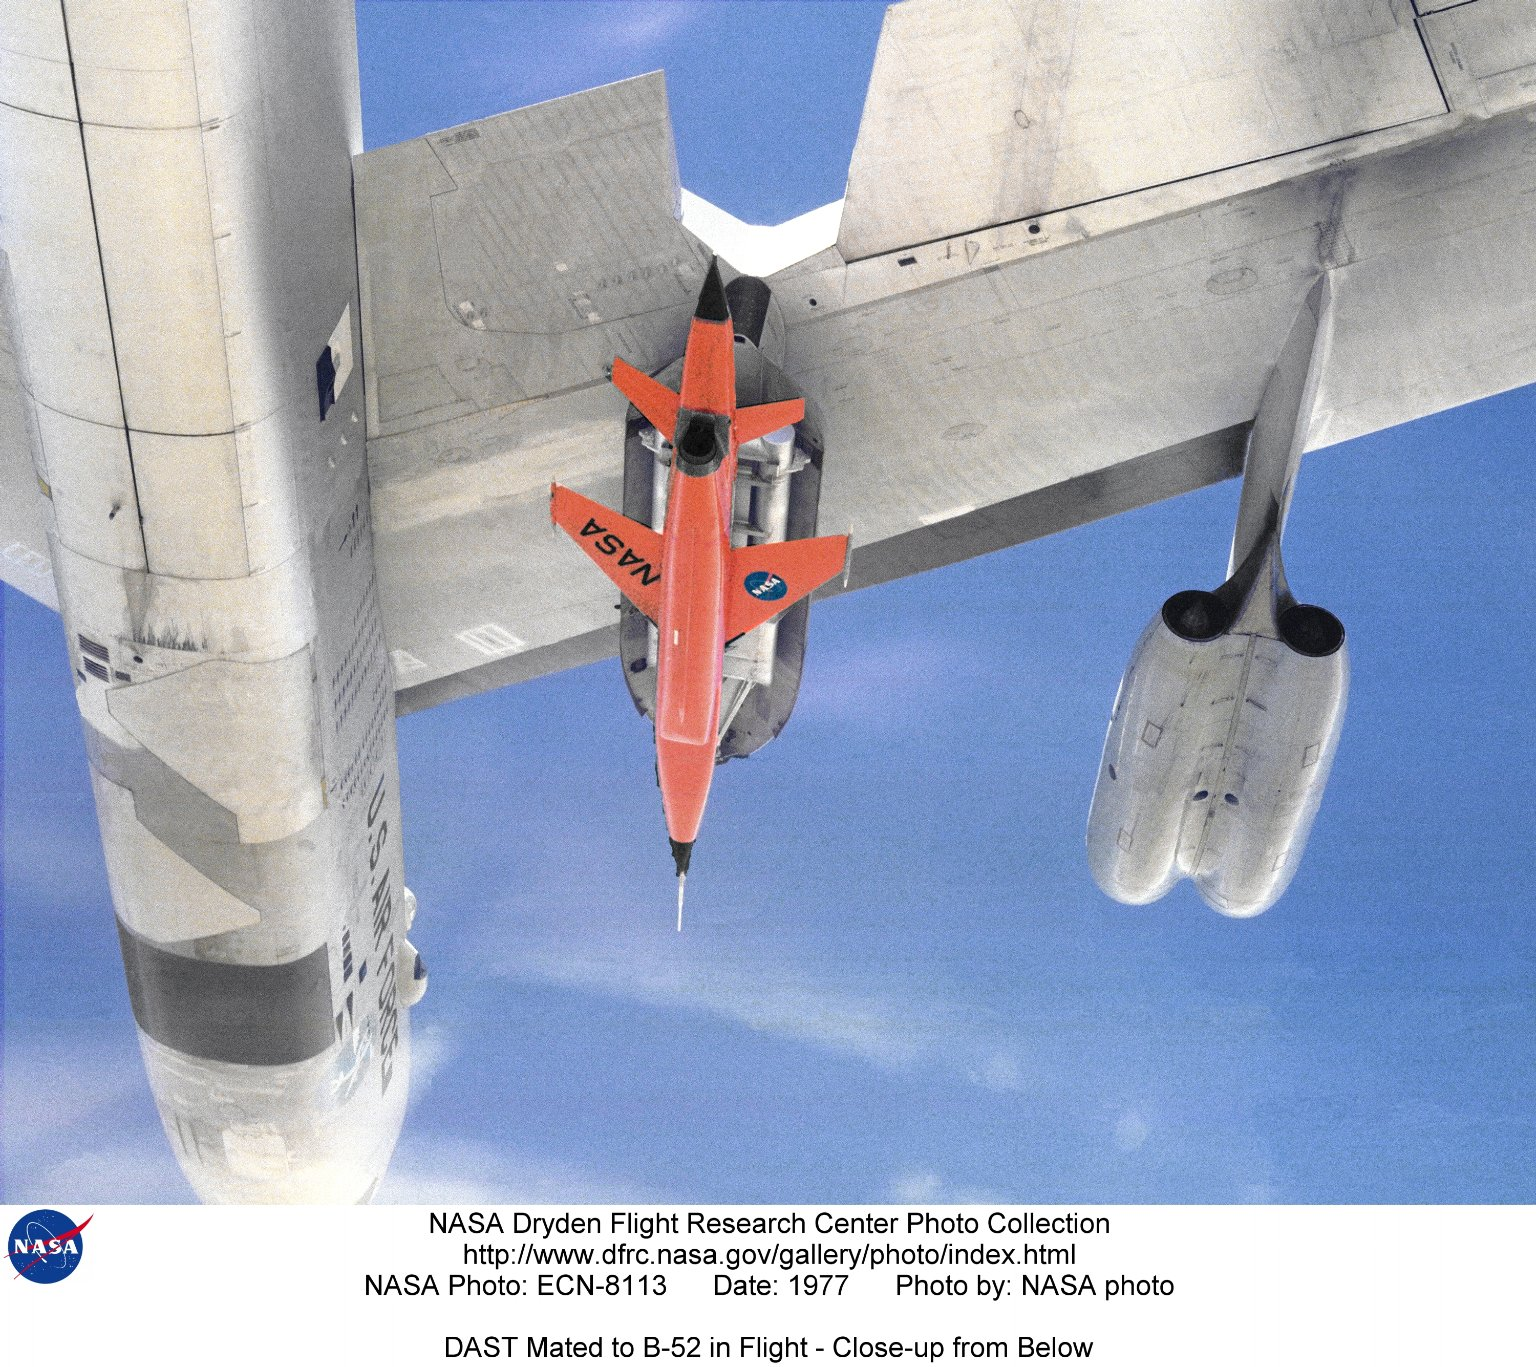 DAST Mated to B-52 in Flight - Close-up from Below